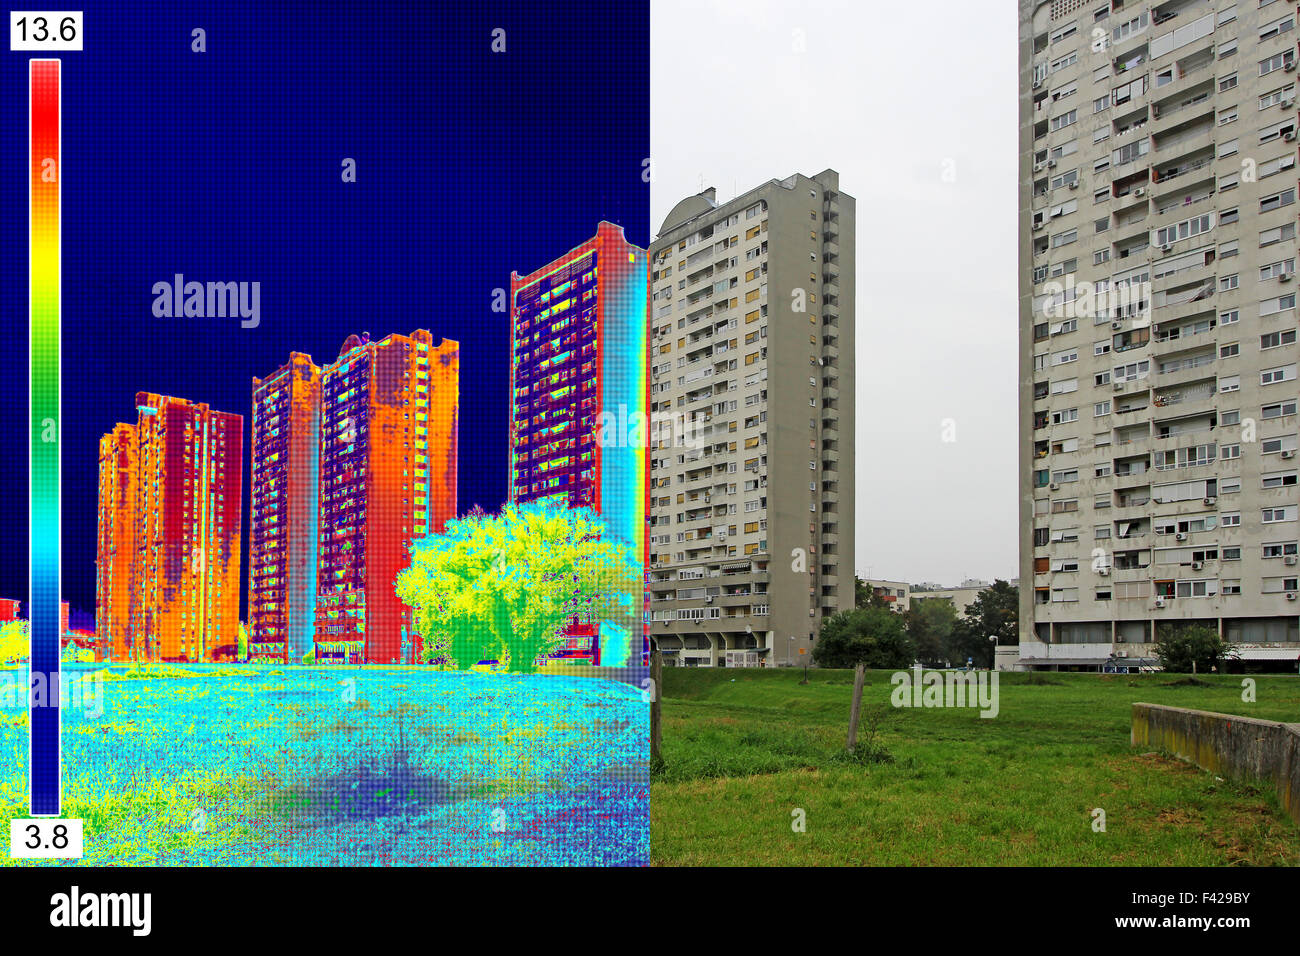 Infrared and real image showing lack of thermal insulation on Residential building - Stock Image